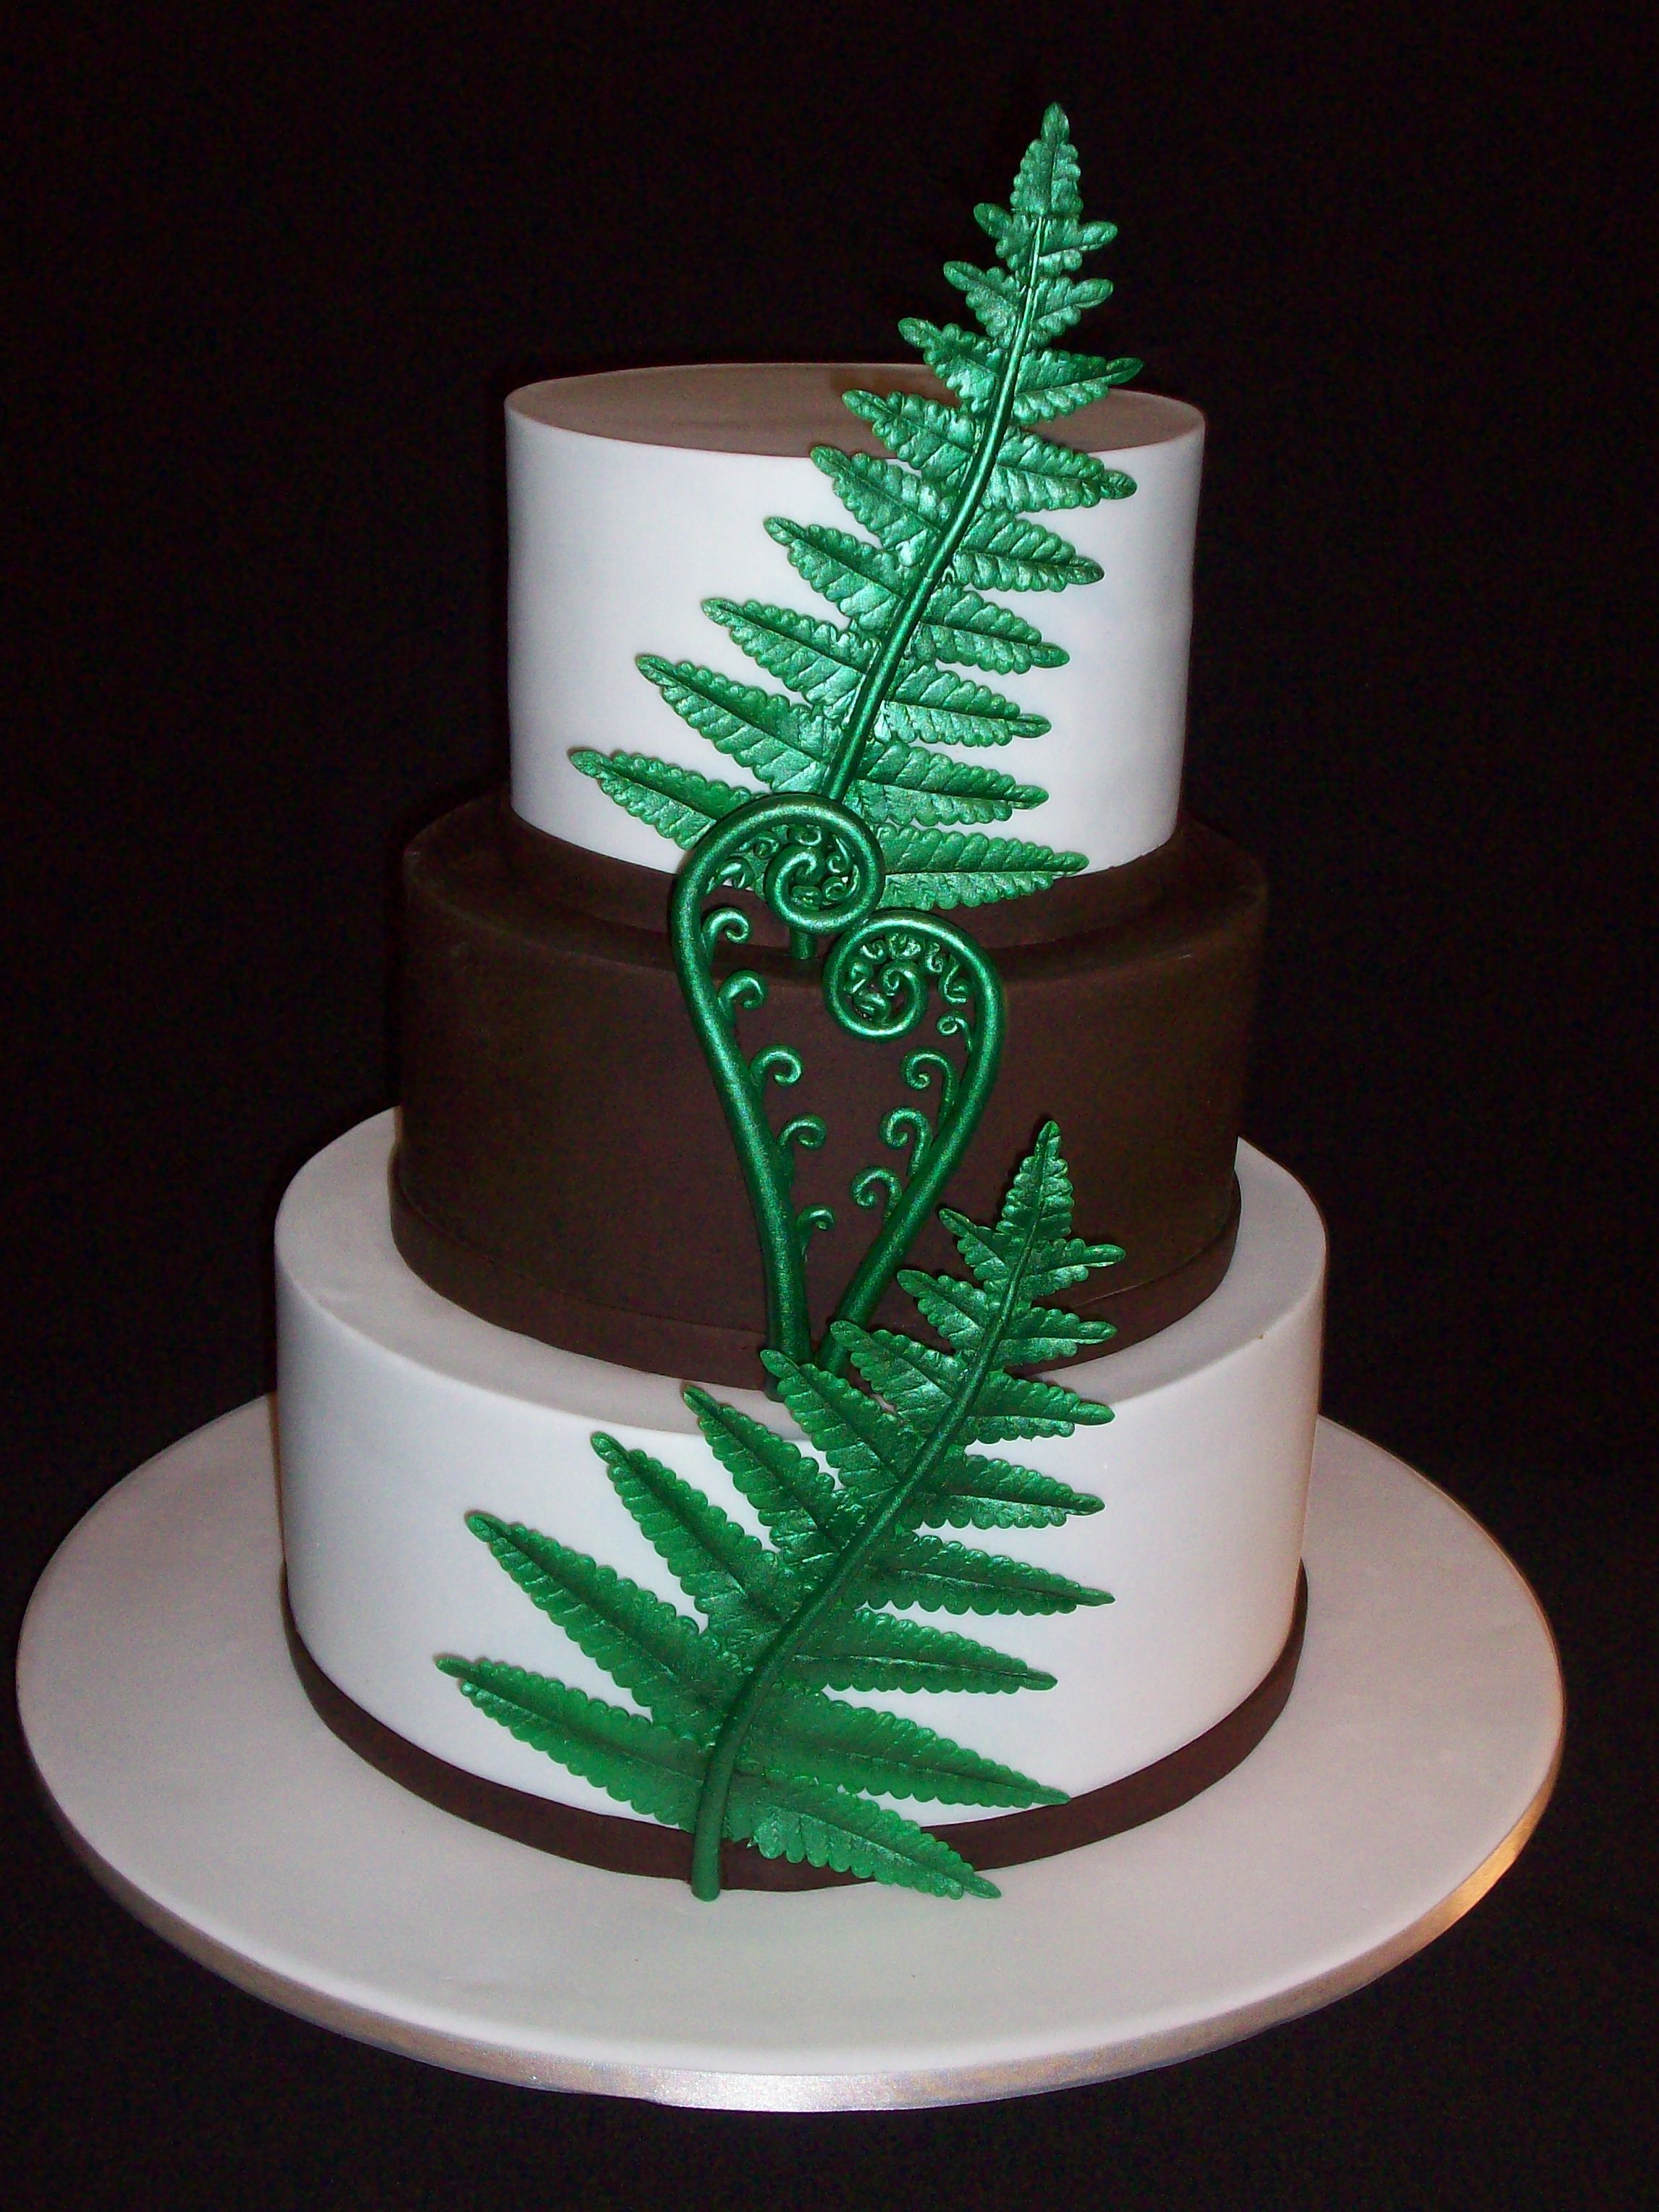 Samoan Themed Birthday Cake Ideas And Designs